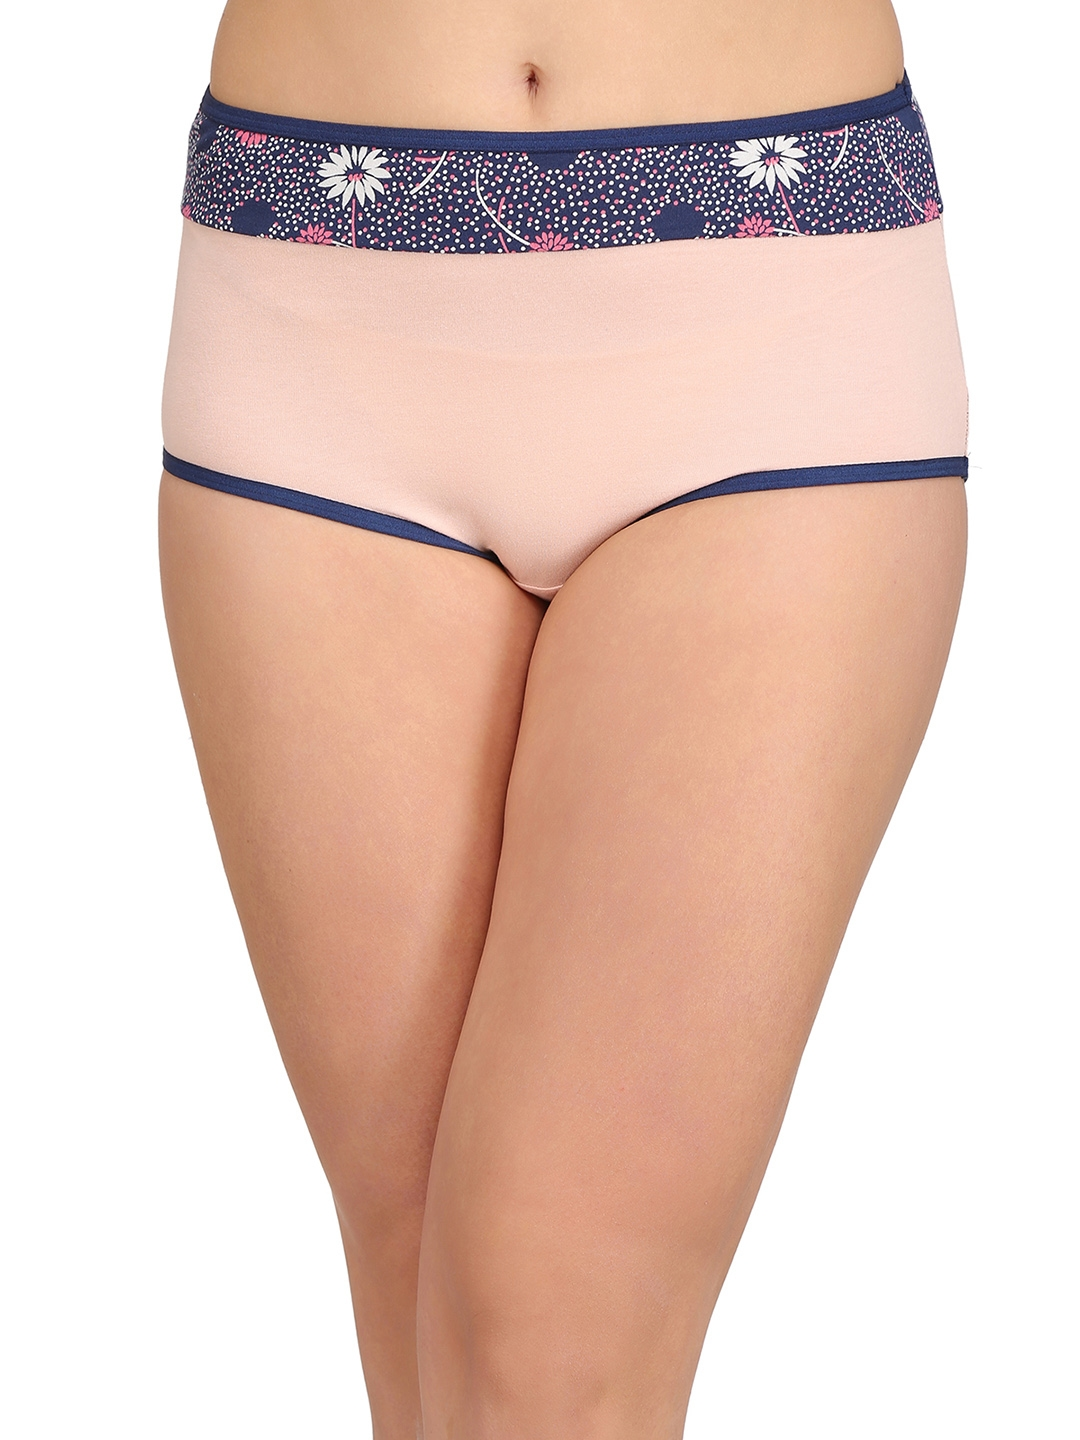 5499d5a942d0 Clovia Cotton High Waist Hipster Panty With Printed Panel PN2392P22